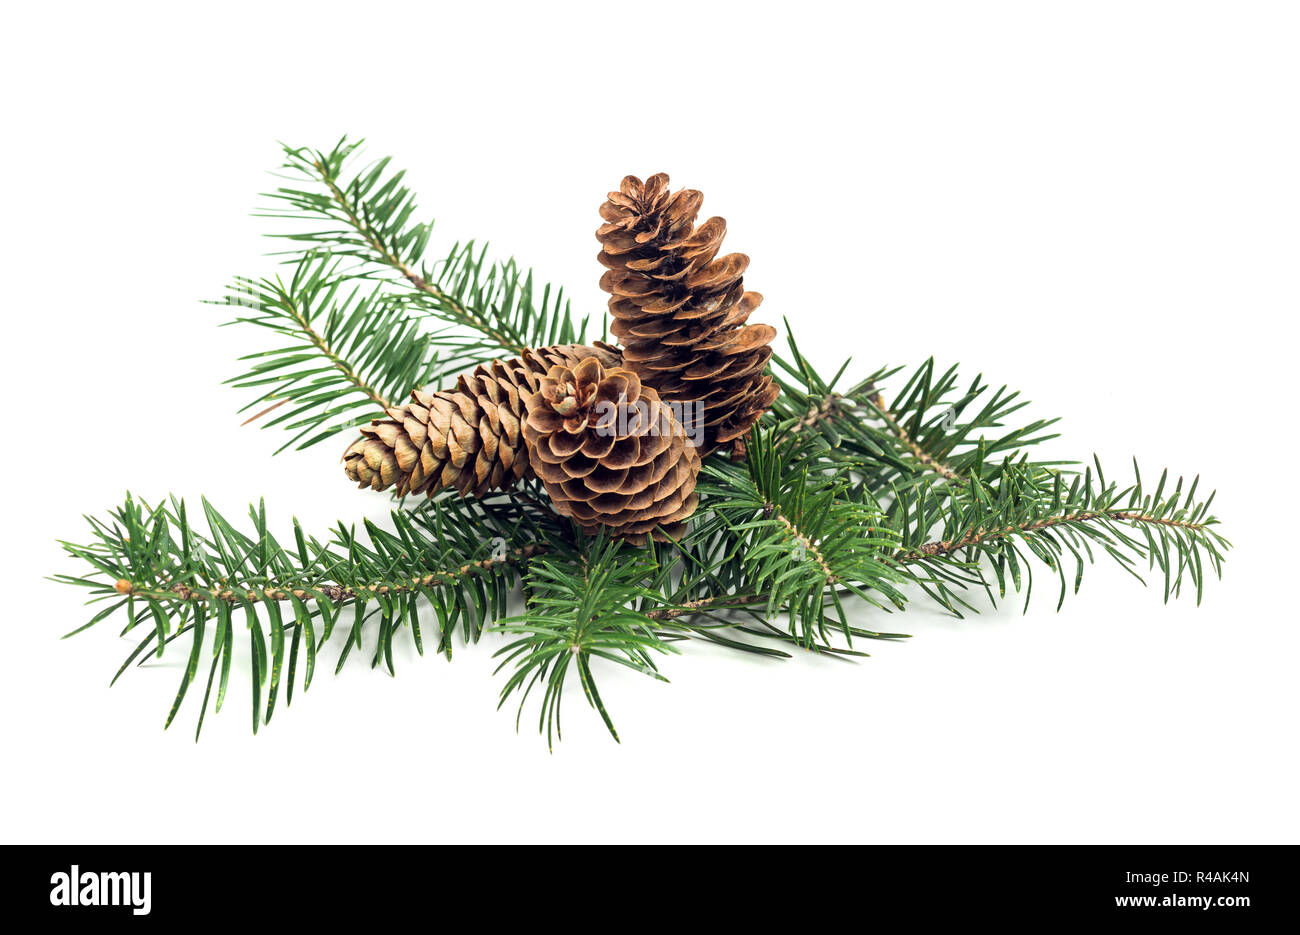 Evergreen branch of Christmas tree with cones on white background. Design element - Stock Image